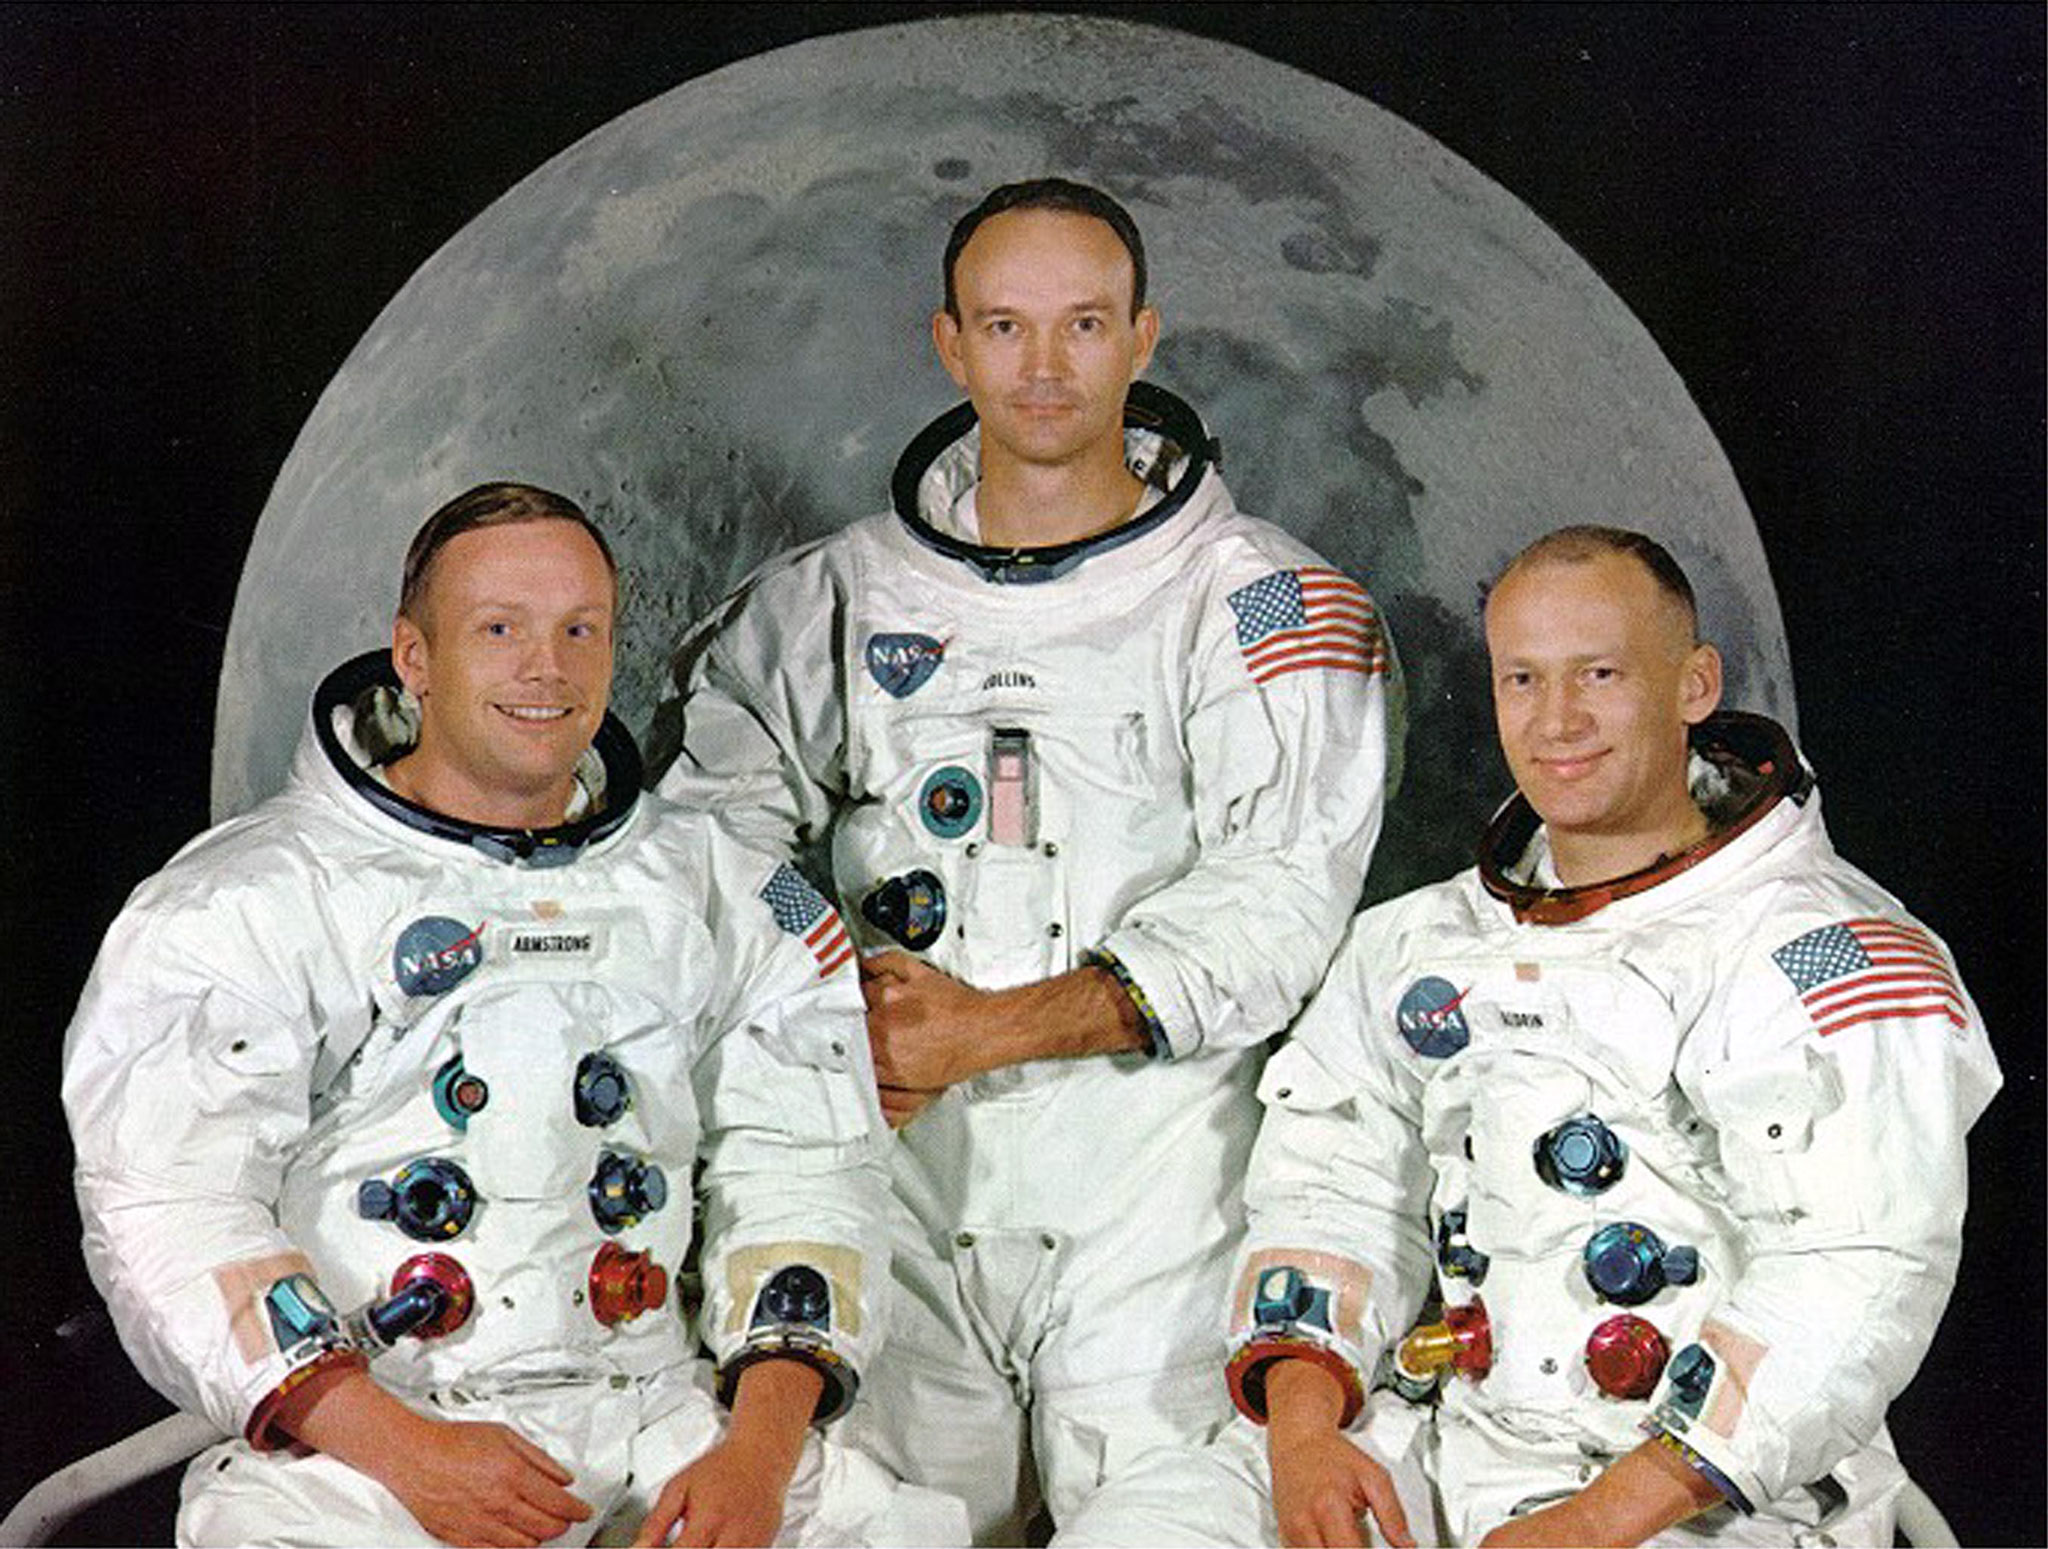 "- UNDATED FILE PHOTO - Apollo 11 astronauts (L-R) Neil Armstrong, Michael Collins and Edward ""Buzz Aldrin pose in this file photo. The 30th anniversary of the Apollo 11 mission is July 16 (launch) and July 20 (landing on the moon)."